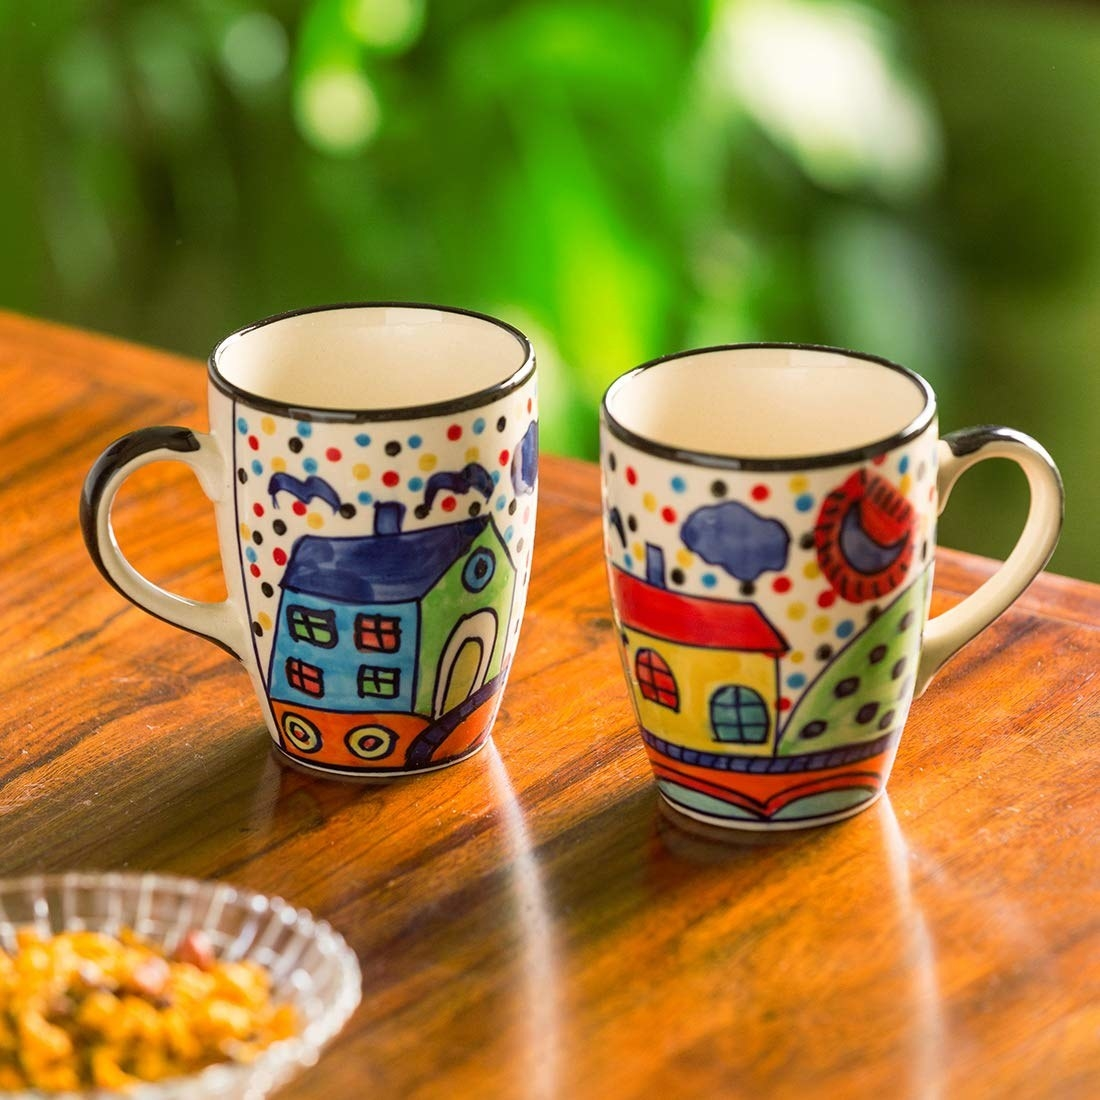 Two mugs with little houses hand-painted on them